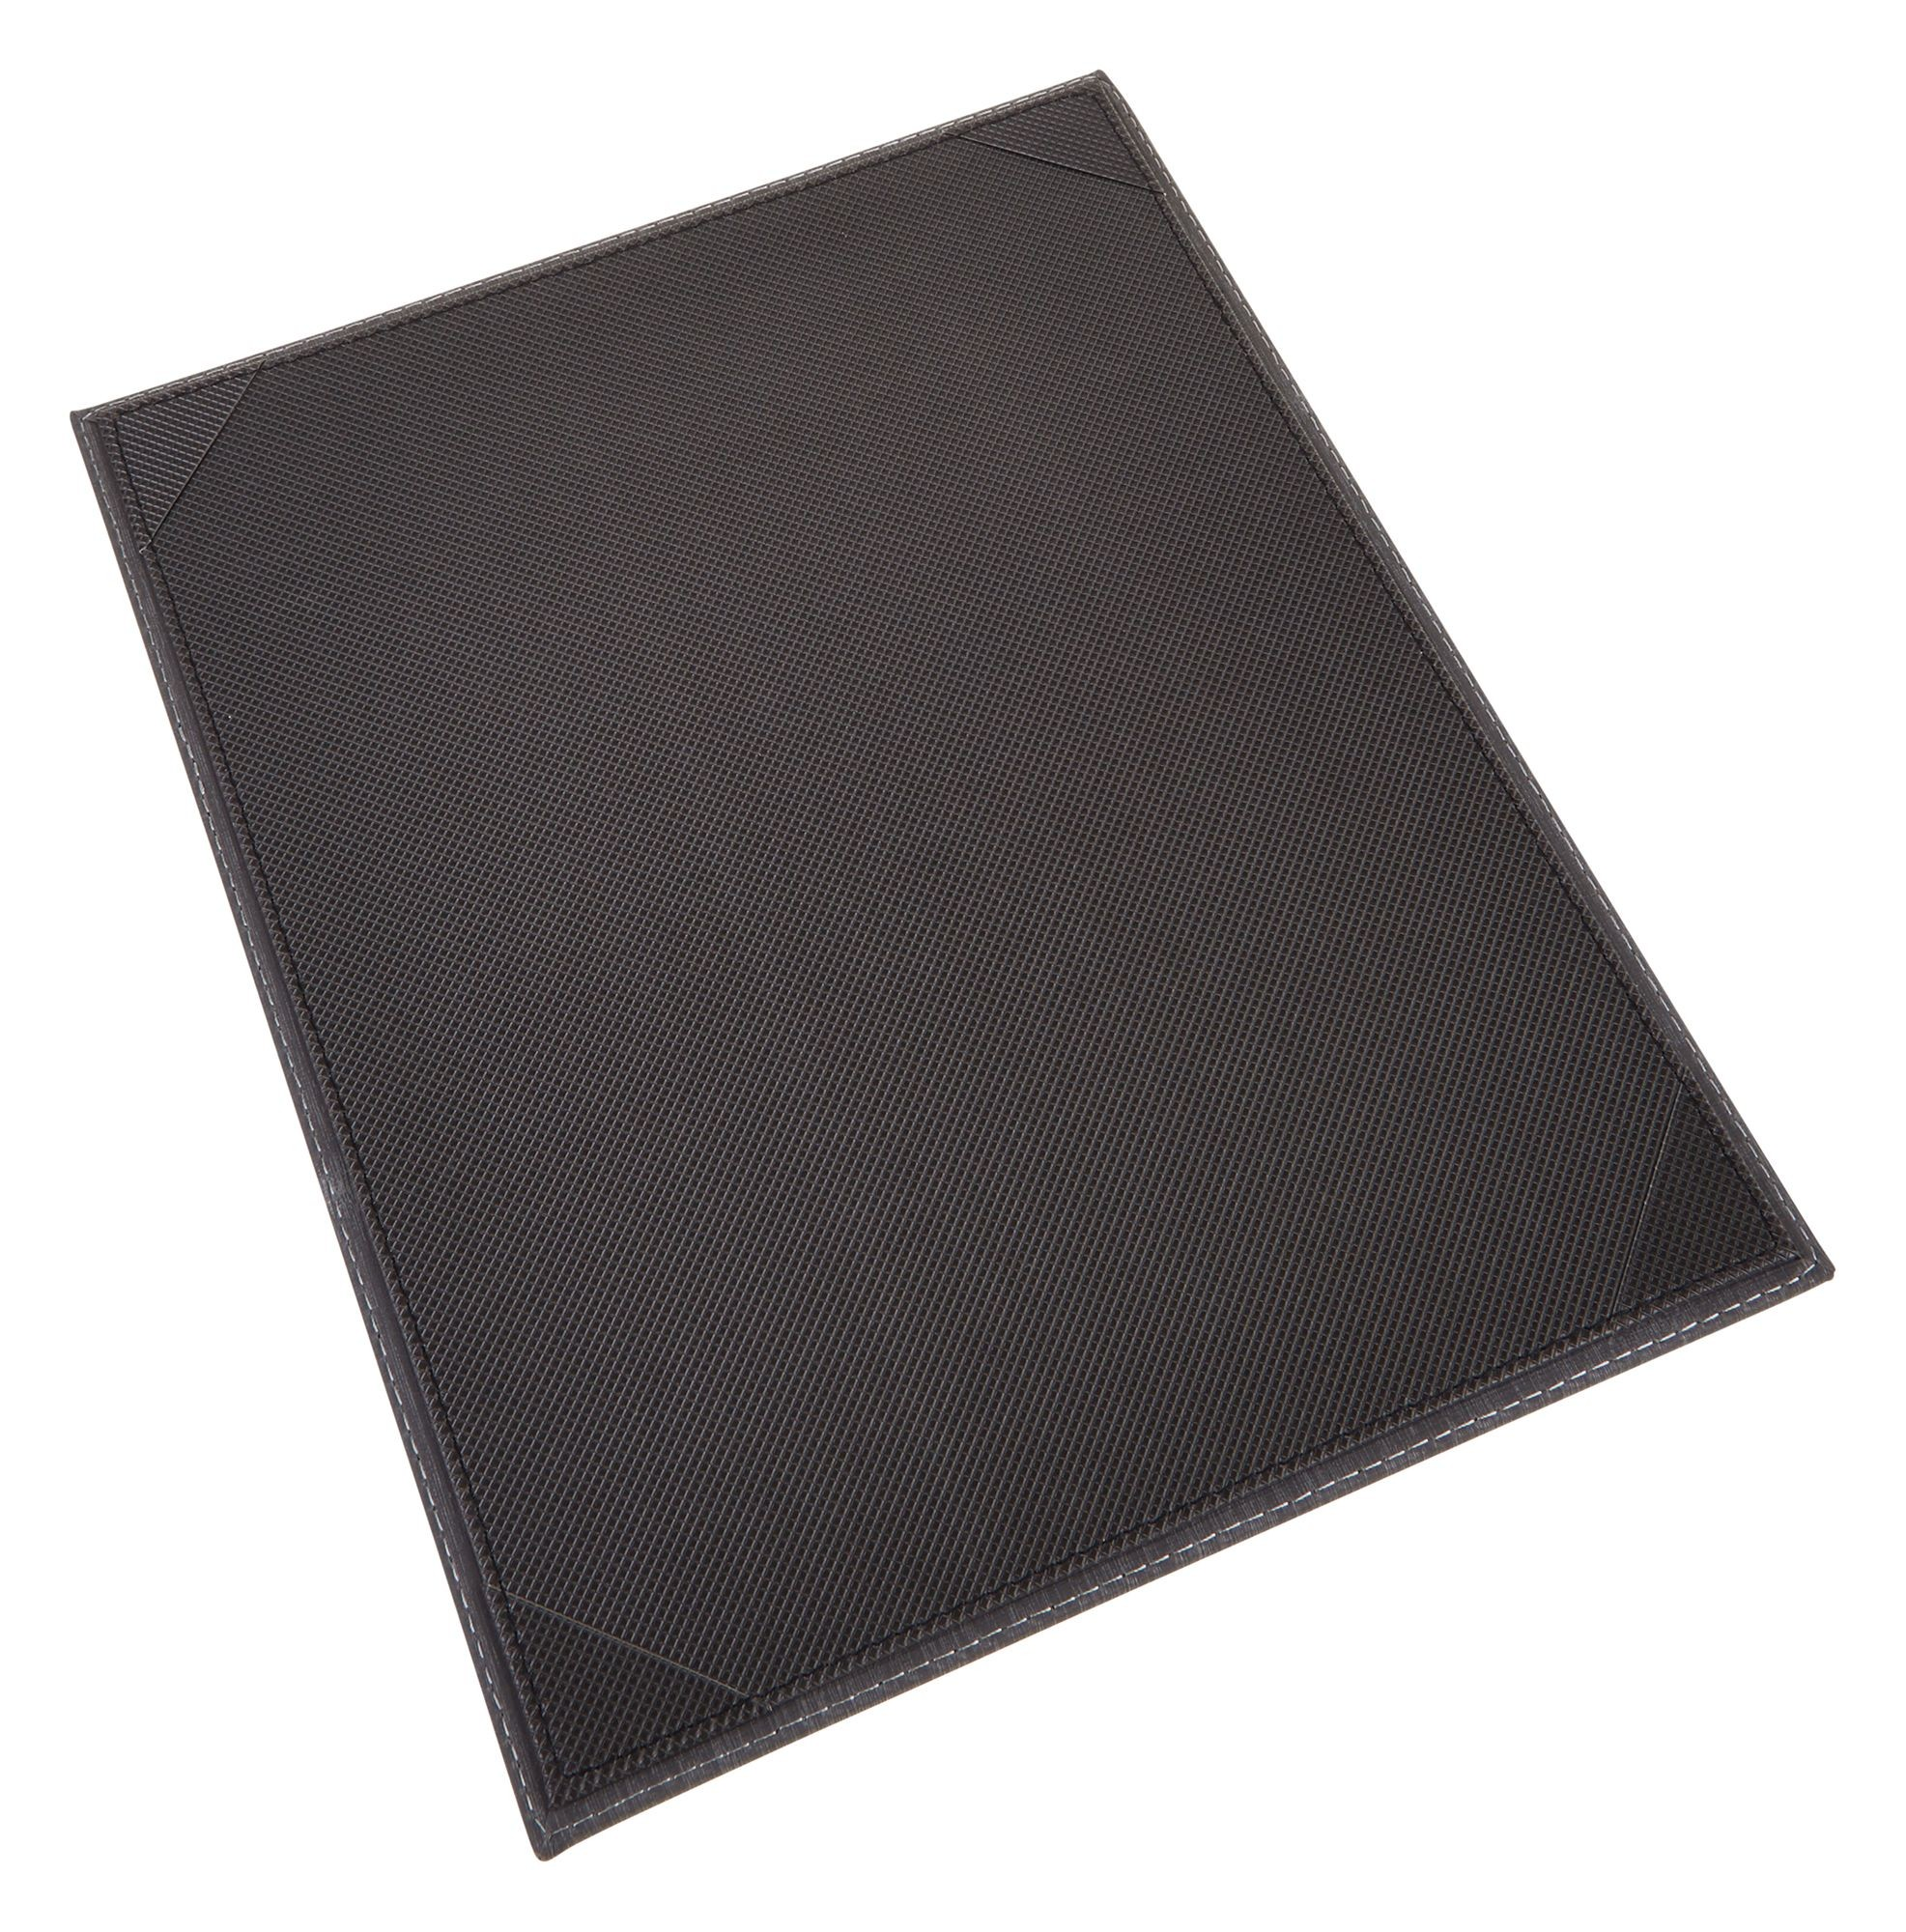 "Winco LMS-811GY 8-1/2"" x 11"" Gray Leatherette Single Panel Menu Cover"